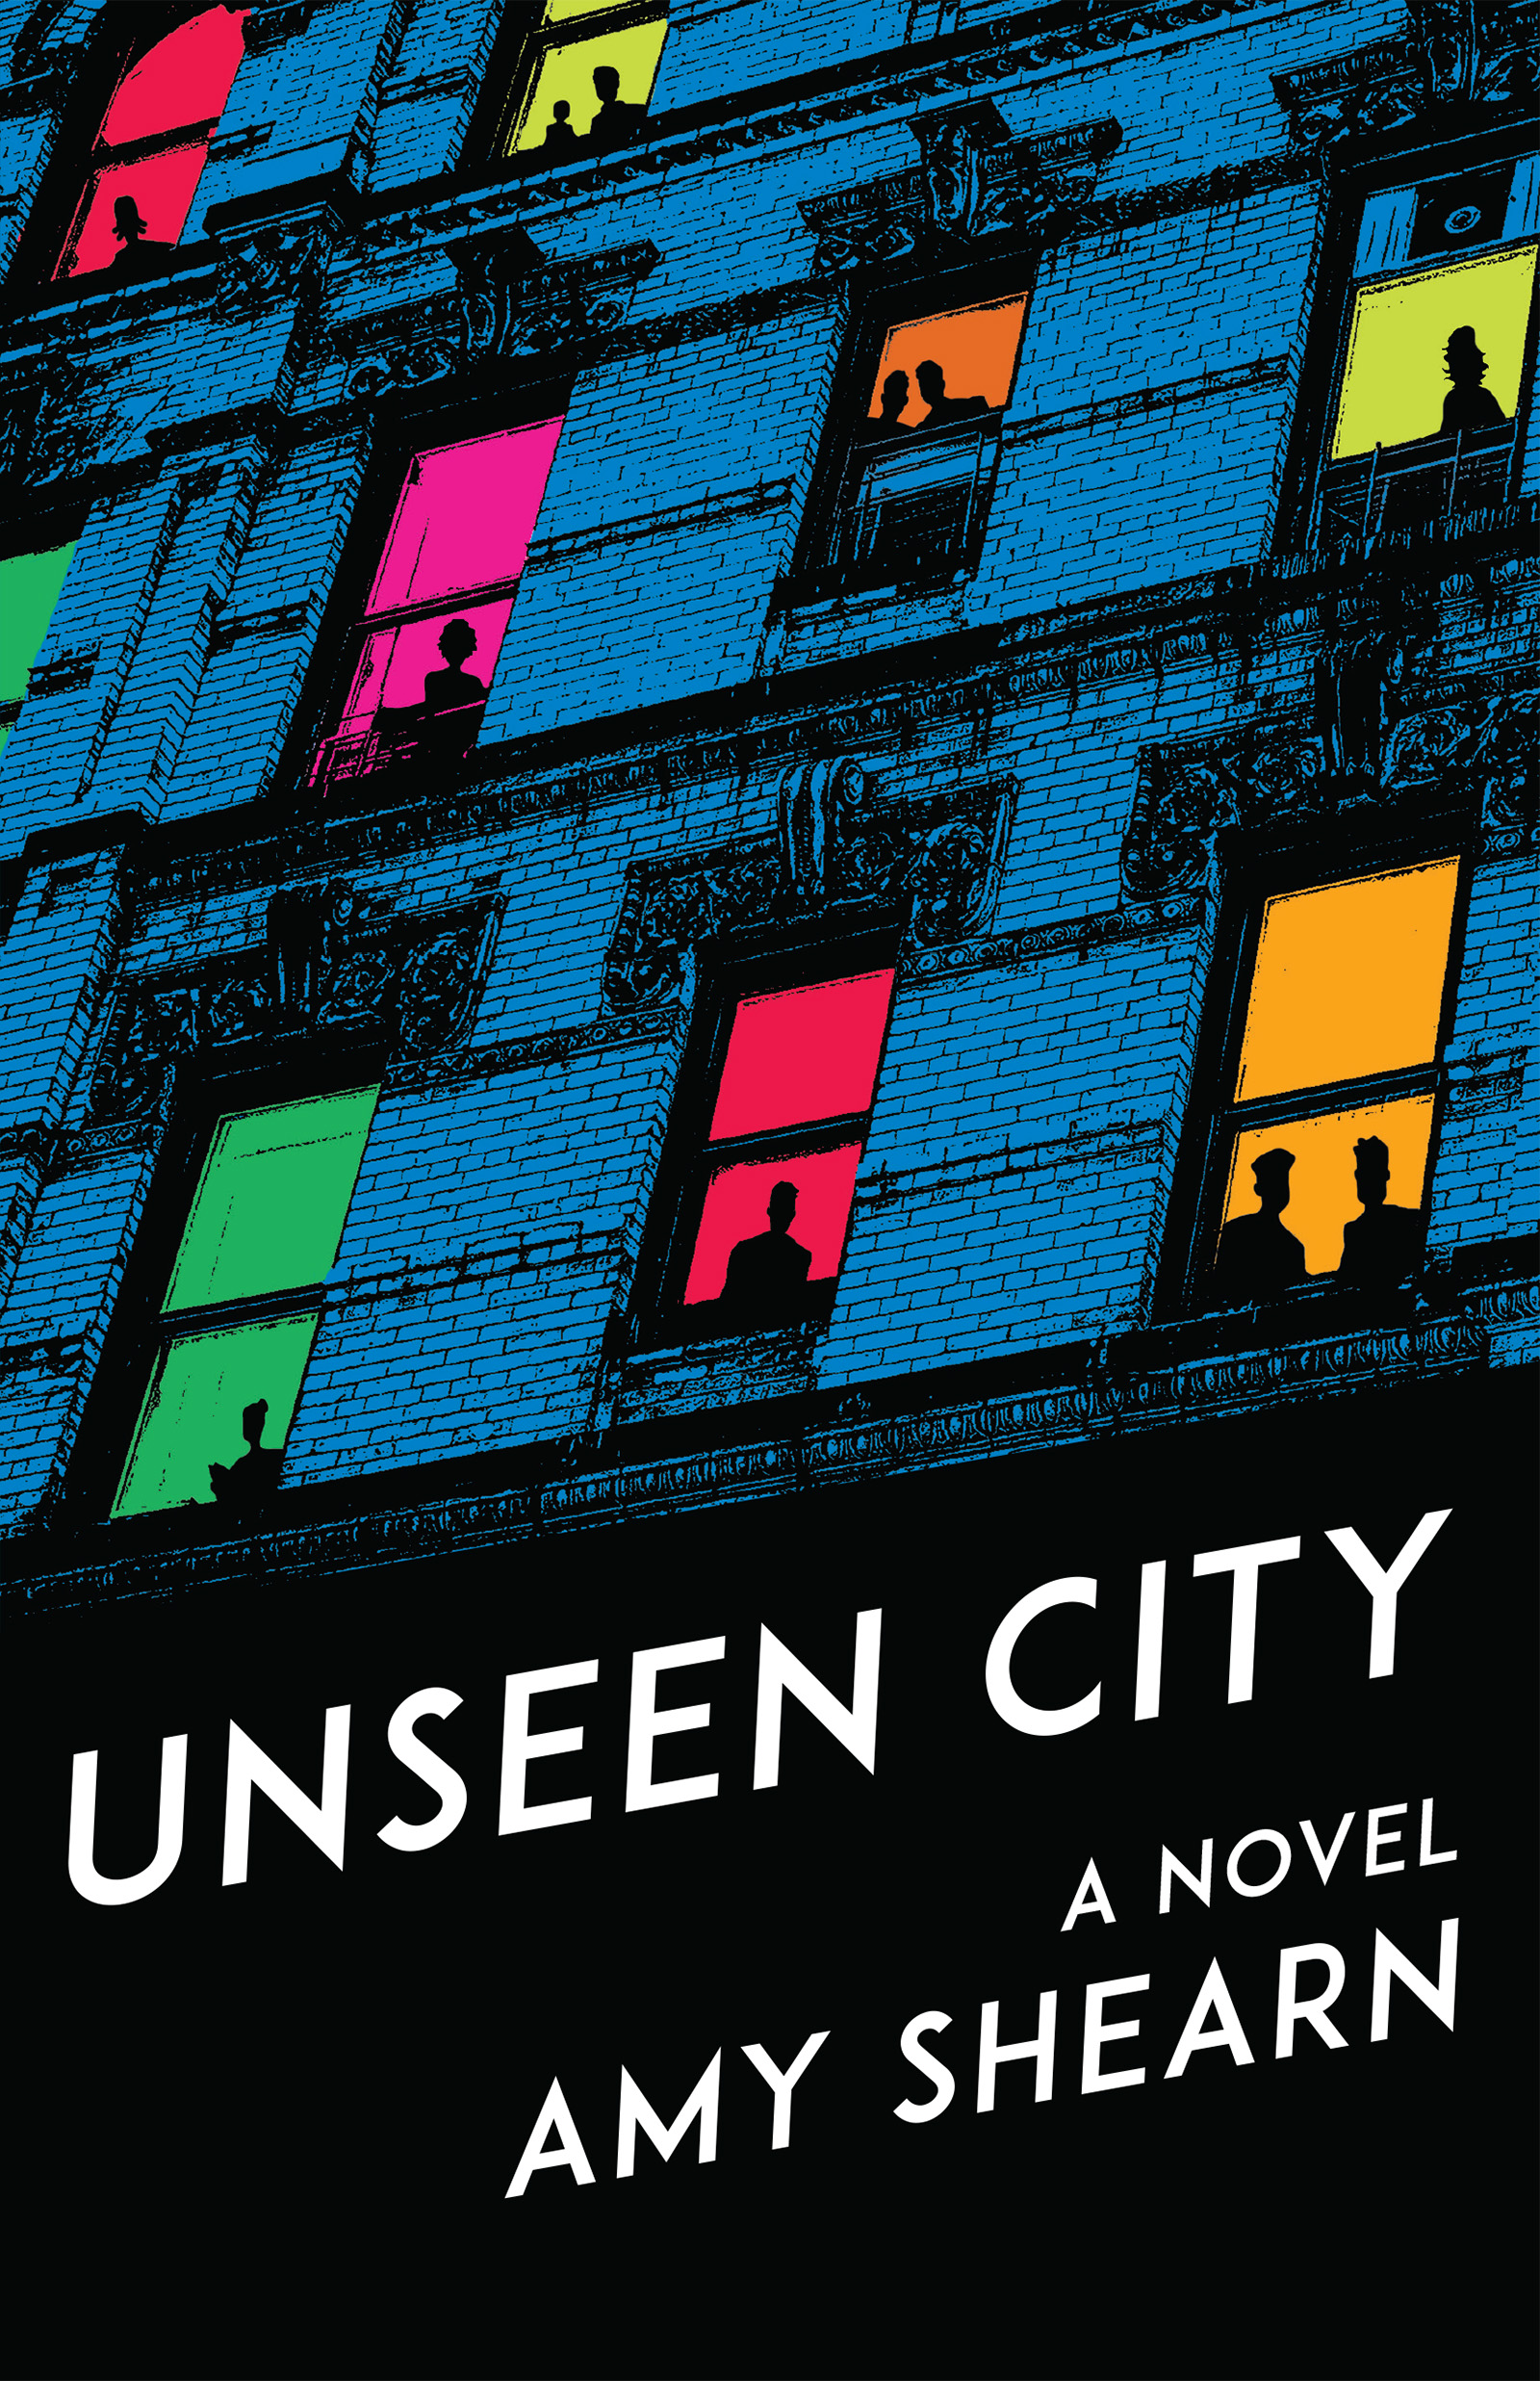 A graphic design of the front of a city building more than three stories high with open windows and people standing inside and white script that reads Unseen City a novel by Amy Shearn.